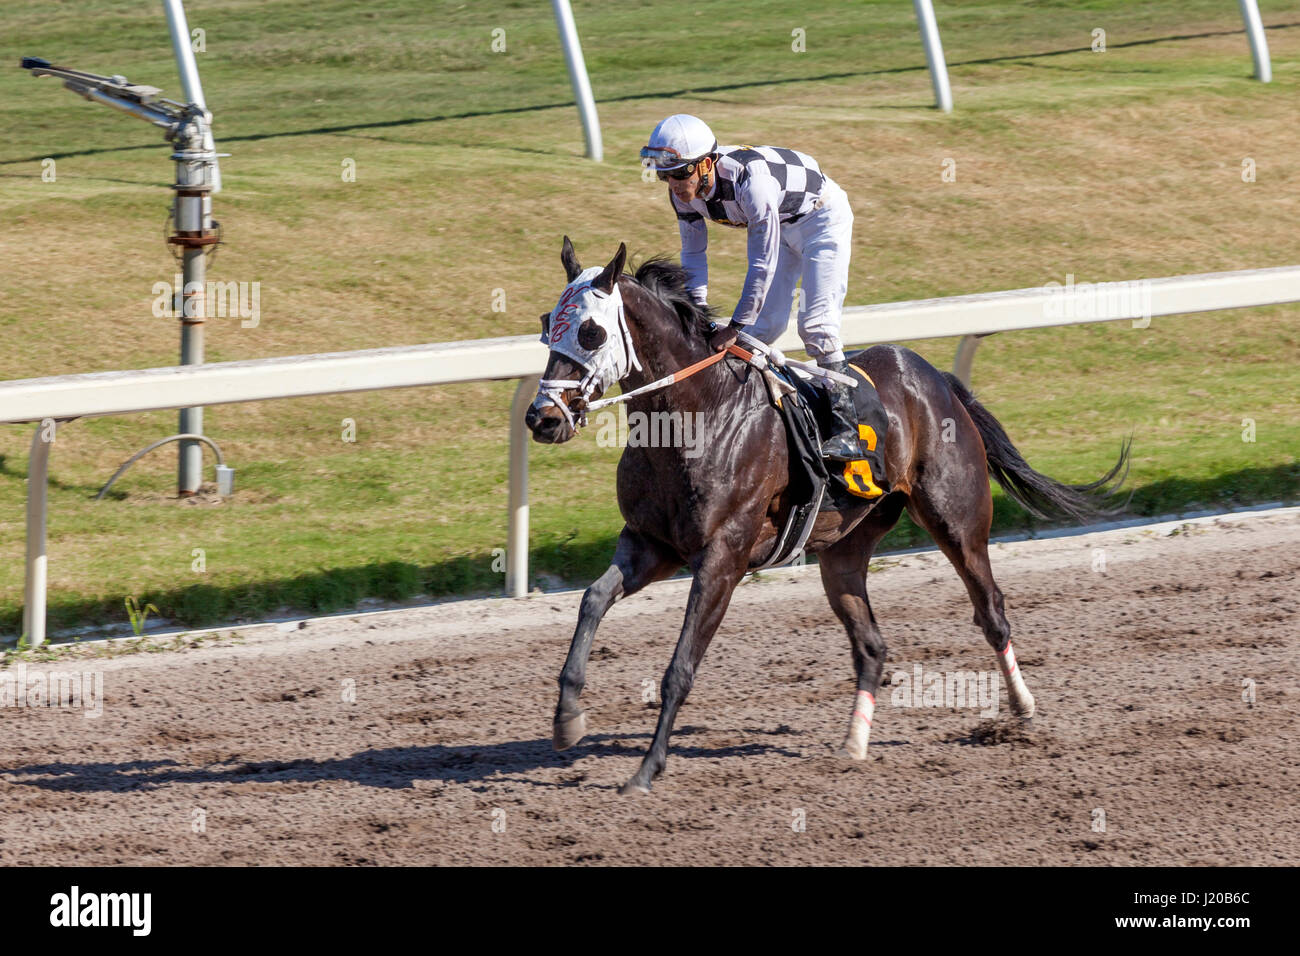 Hallandale Beach, Fl, USA - March 11, 2017: Horse racing at the Gulfstream Park race track in Hallandale Beach, - Stock Image